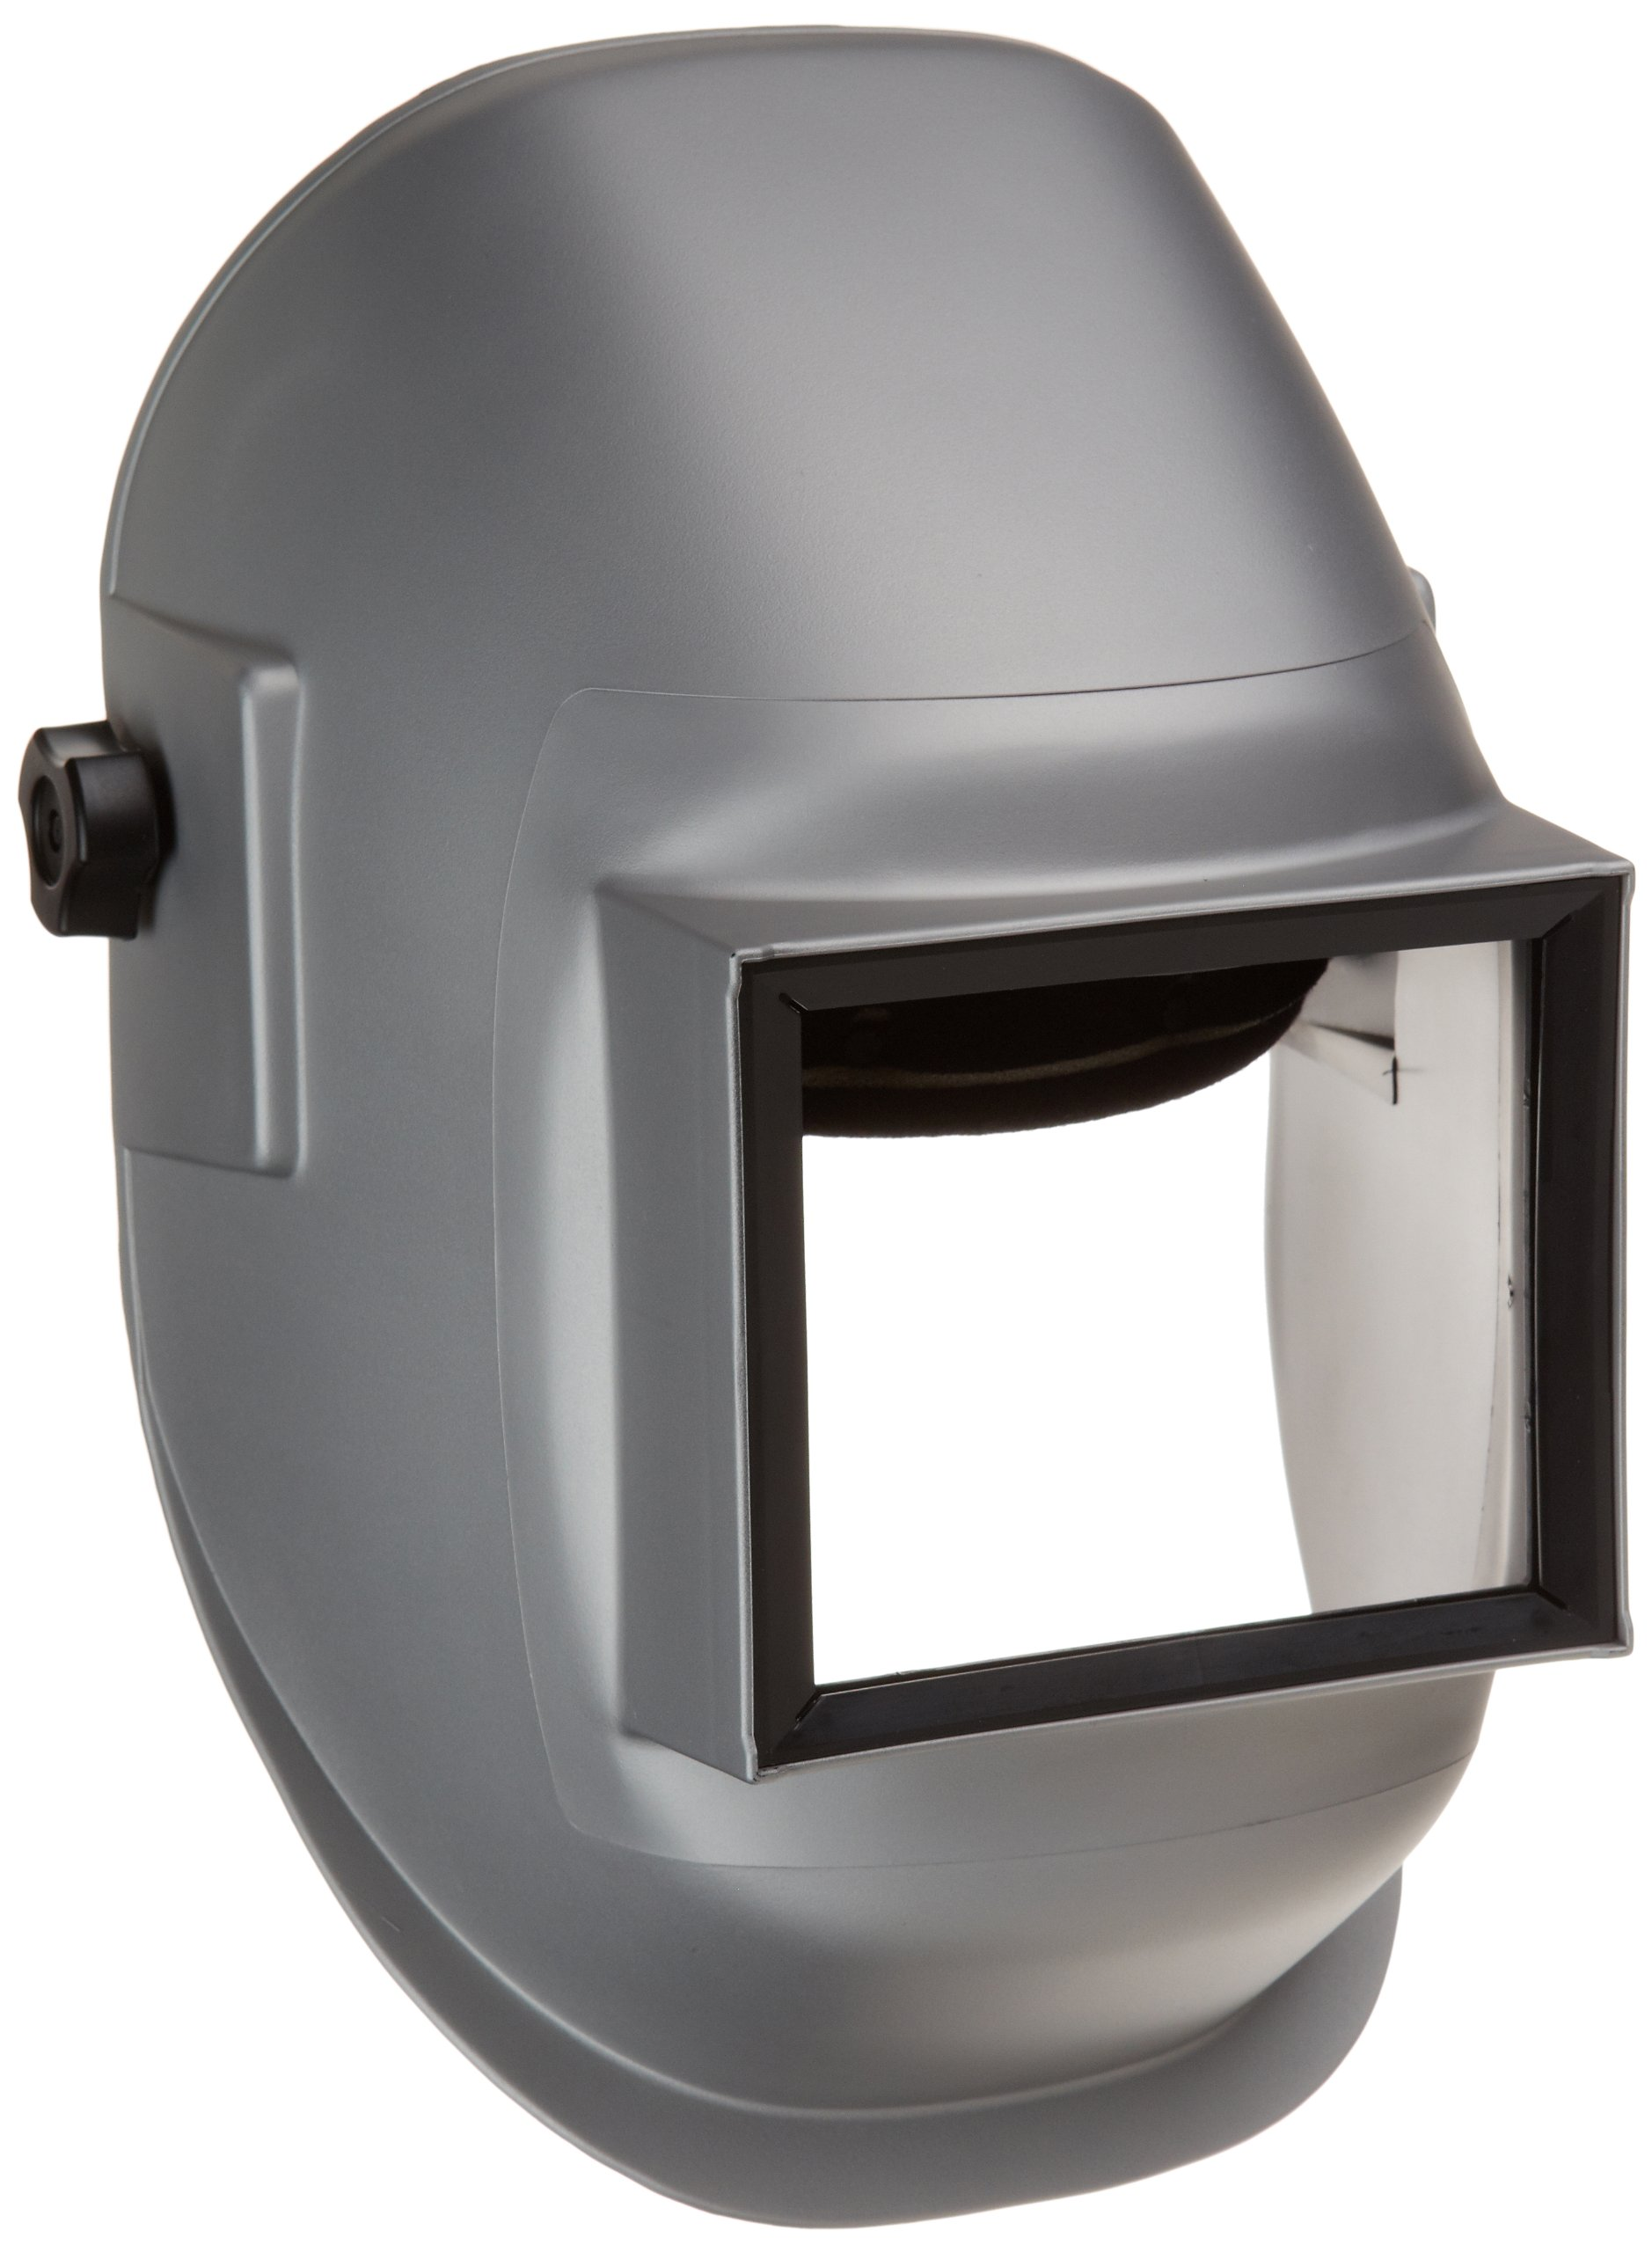 Sellstrom 29911 Nylon Super Kool Silver Coated Welding Helmet with 4-1/2'' Width x 5-1/4'' Height Sel-Snap Fixed Front